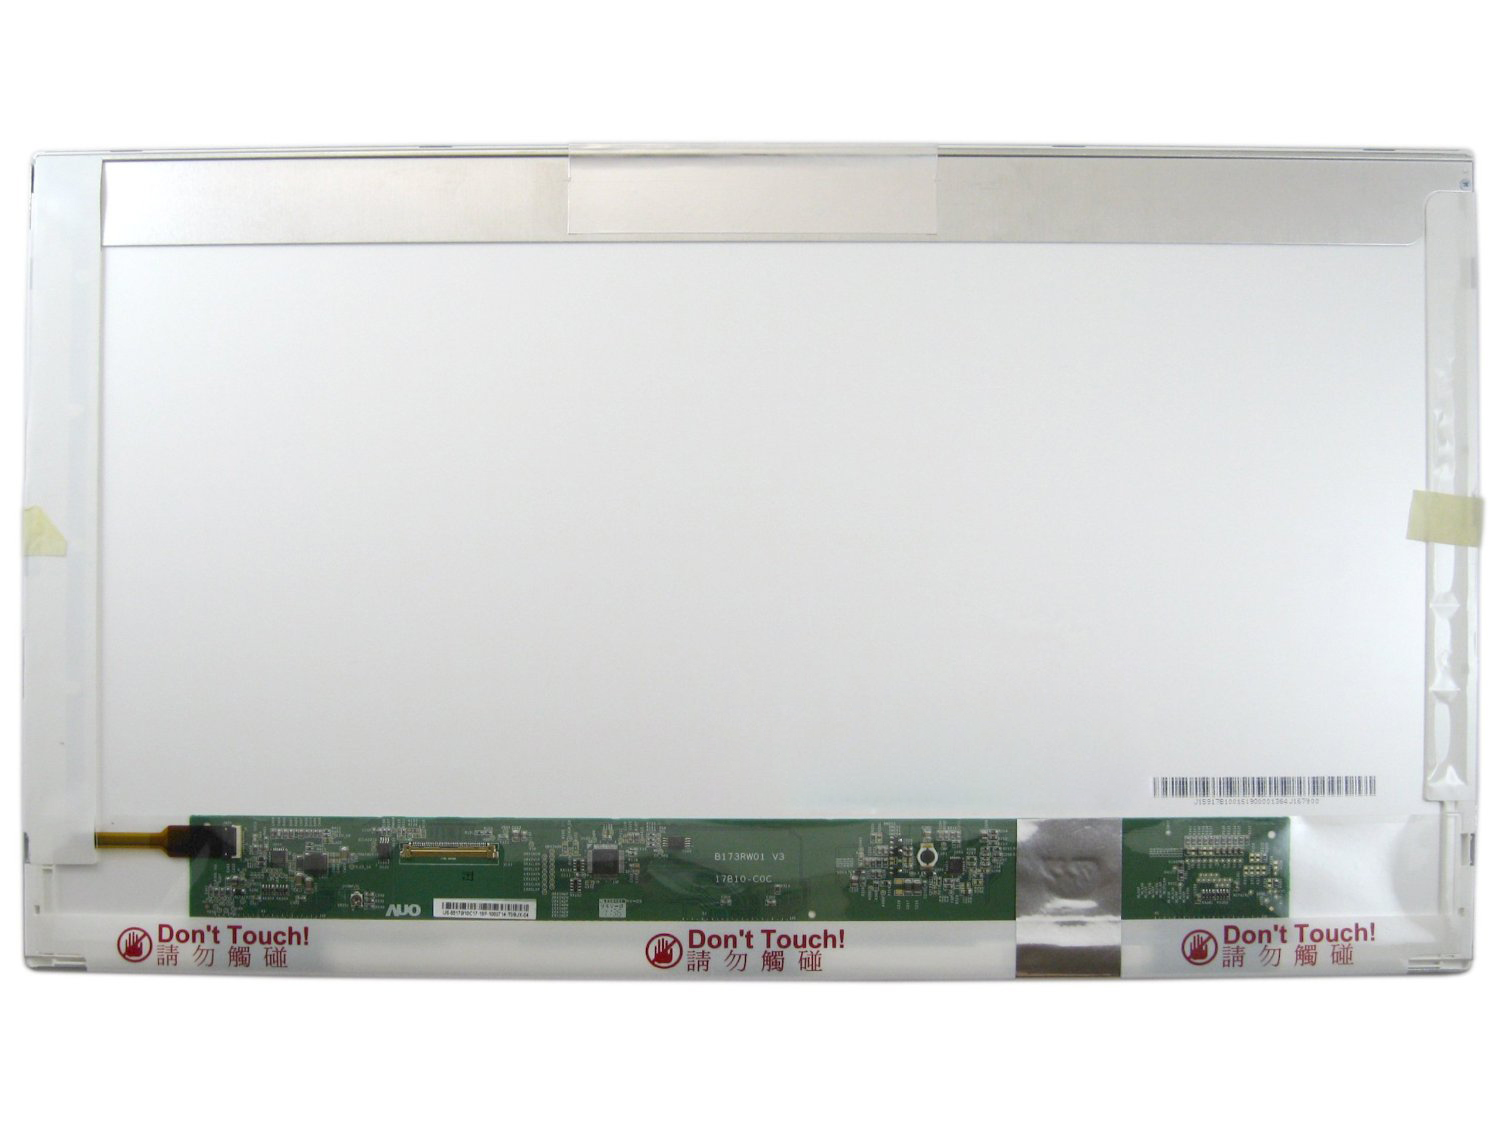 QuYing Laptop LCD Screen for Acer ASPIRE V3-772 V3-772G E5-721 E5-731 E5-771 E5-771G ES1-771 SERIES (17.3 inch 1600x900 30pin) quying laptop lcd screen for acer aspire v5 573pg v5 561 v5 561g v3 572 v3 572g vn7 591g es1 520 series 15 6 1366x768 30pin